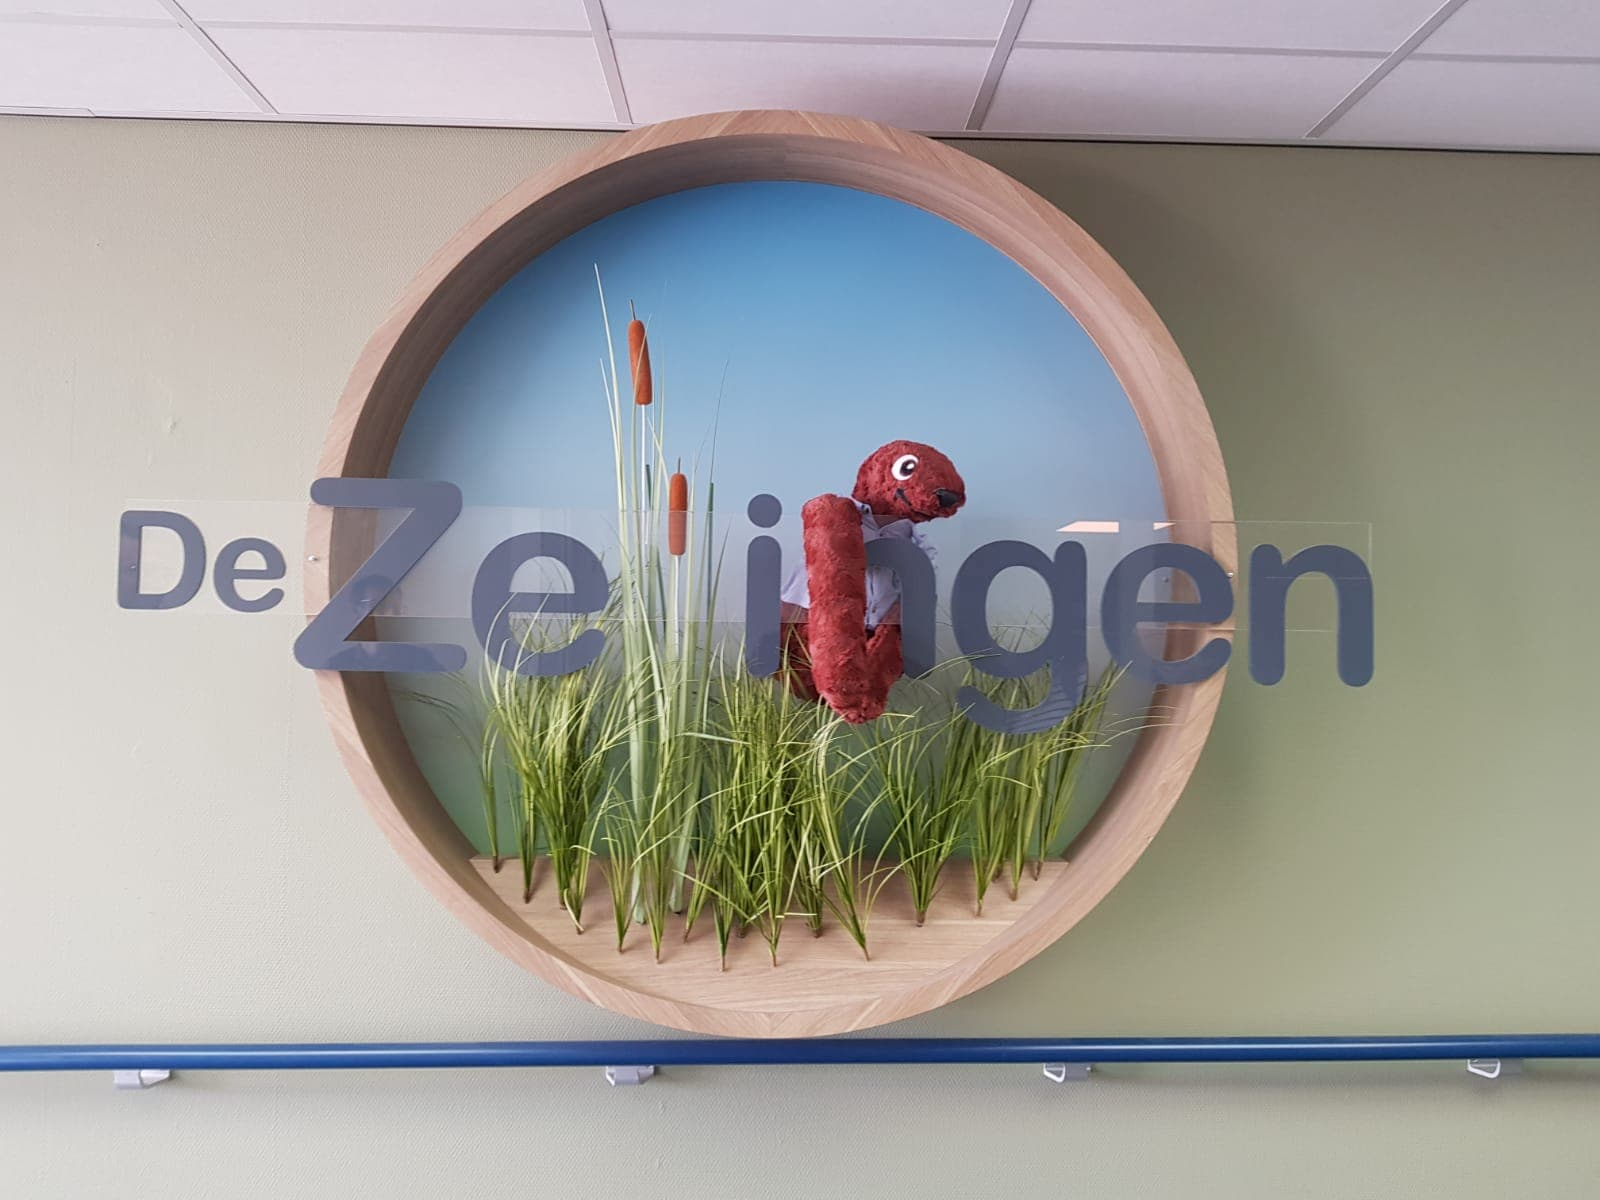 Sid hugging the big physical logo of the Zellingen located in the main hall.